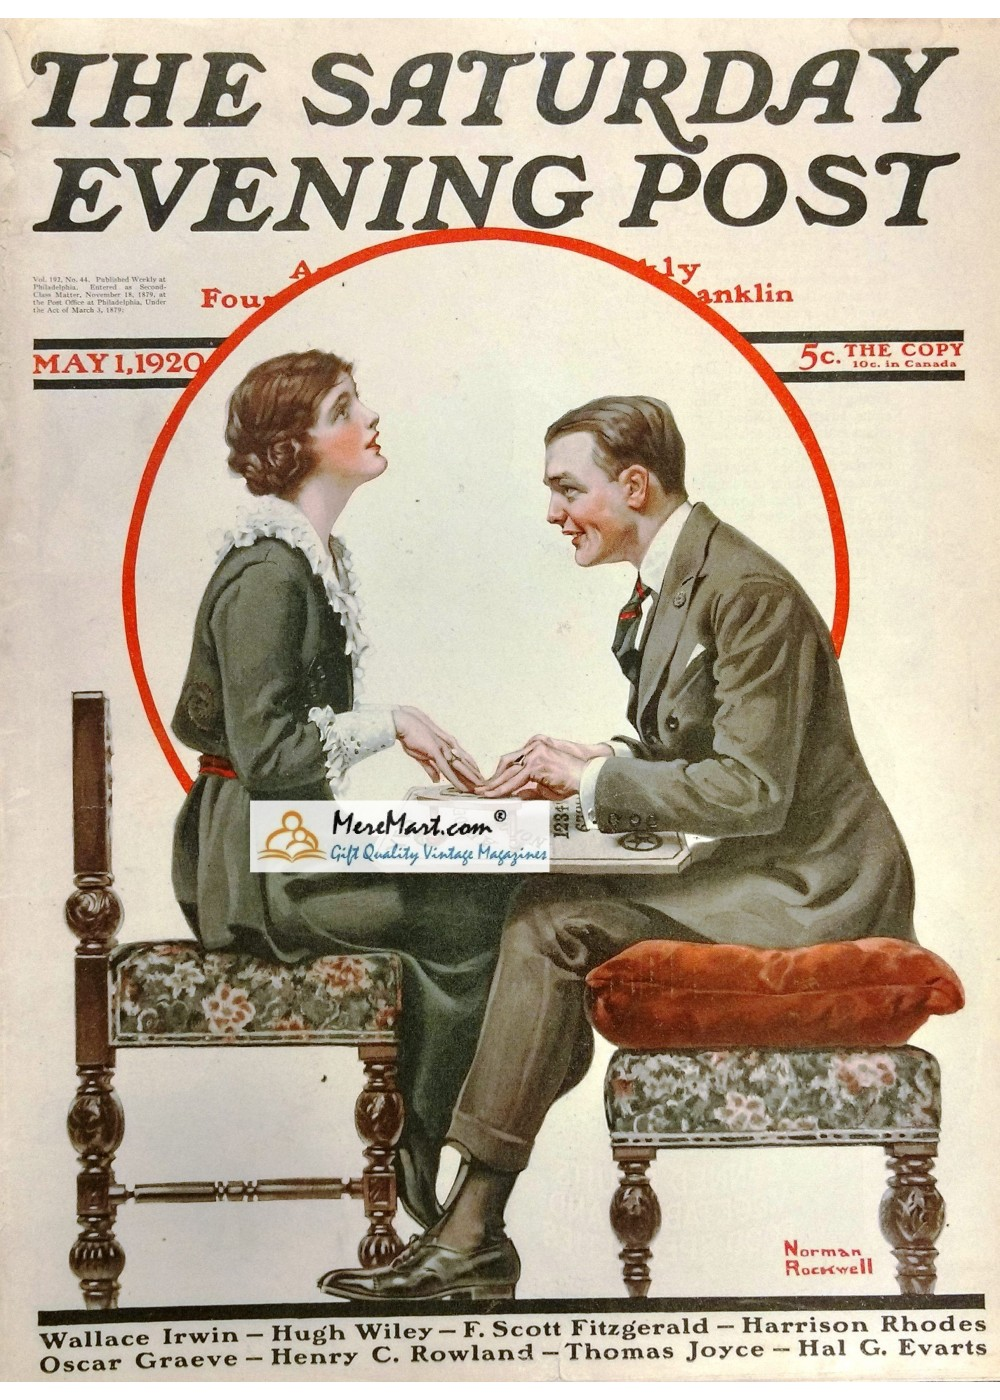 THE SATURDAY EVENING POST TREASURY by ROGER BUTTERFIELD